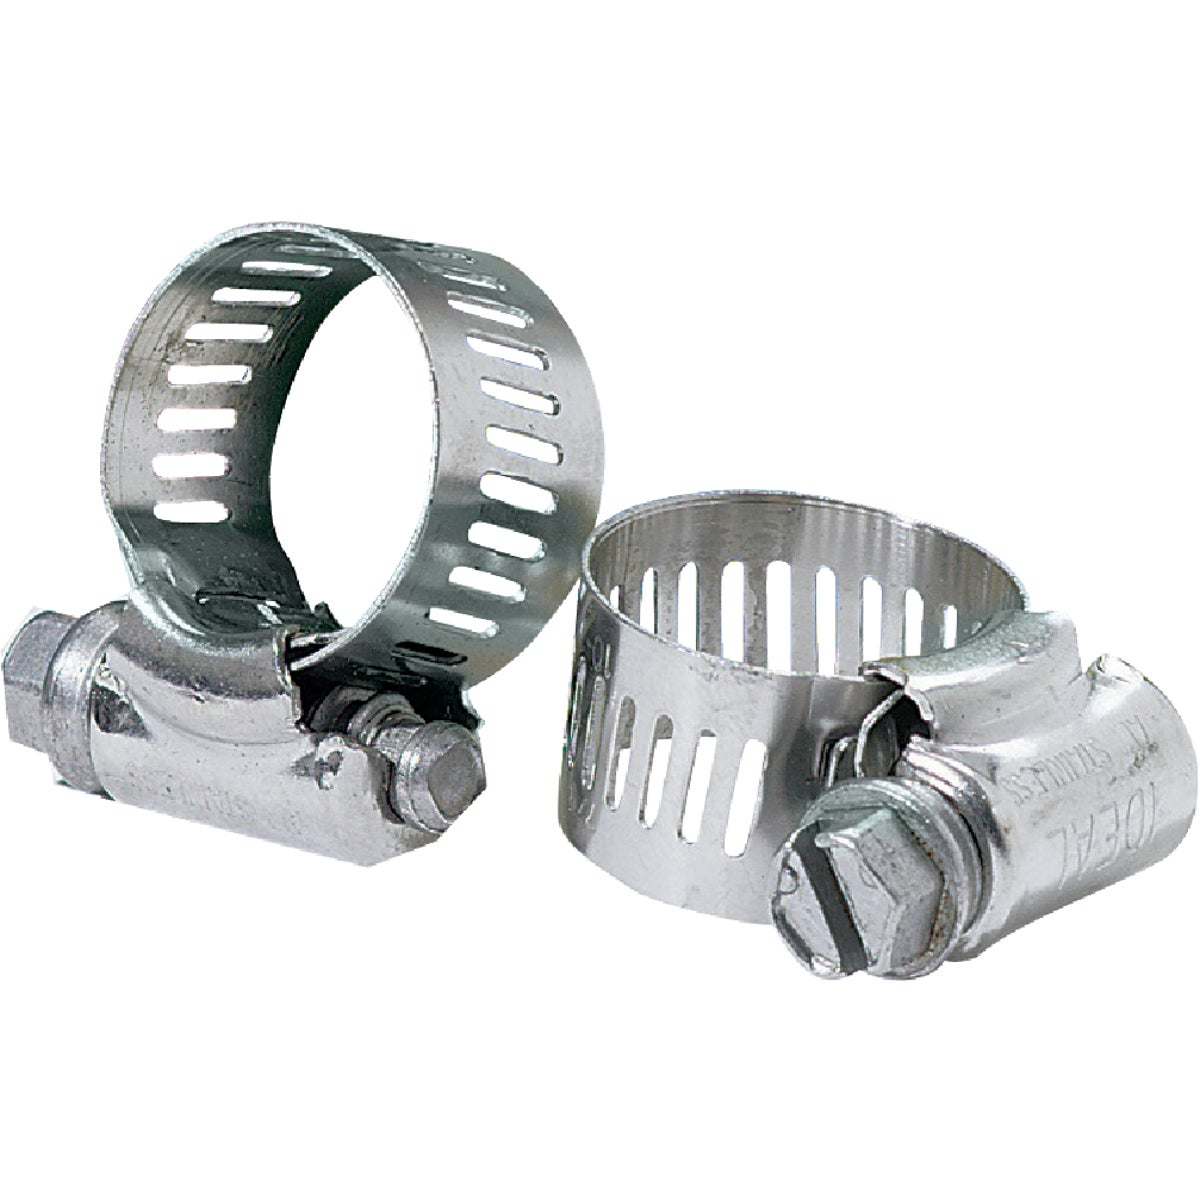 3/8-7/8 CLAMP - 6706153 by Ideal Corp